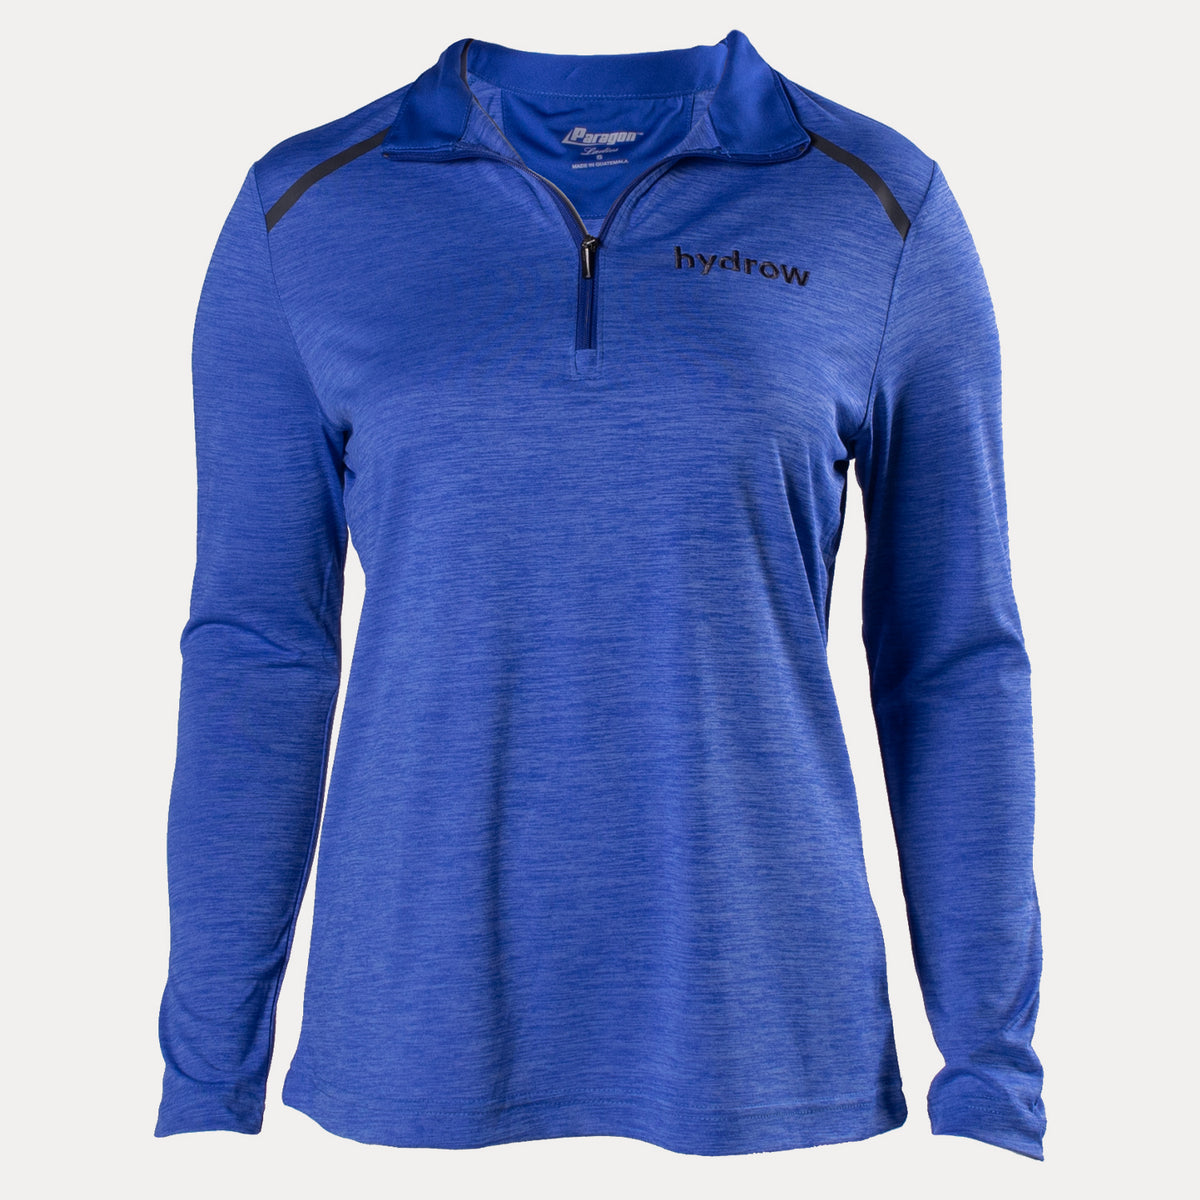 Hydrow Linear Logo Paragon Performance 1/4 Zip Pullover - Ladies